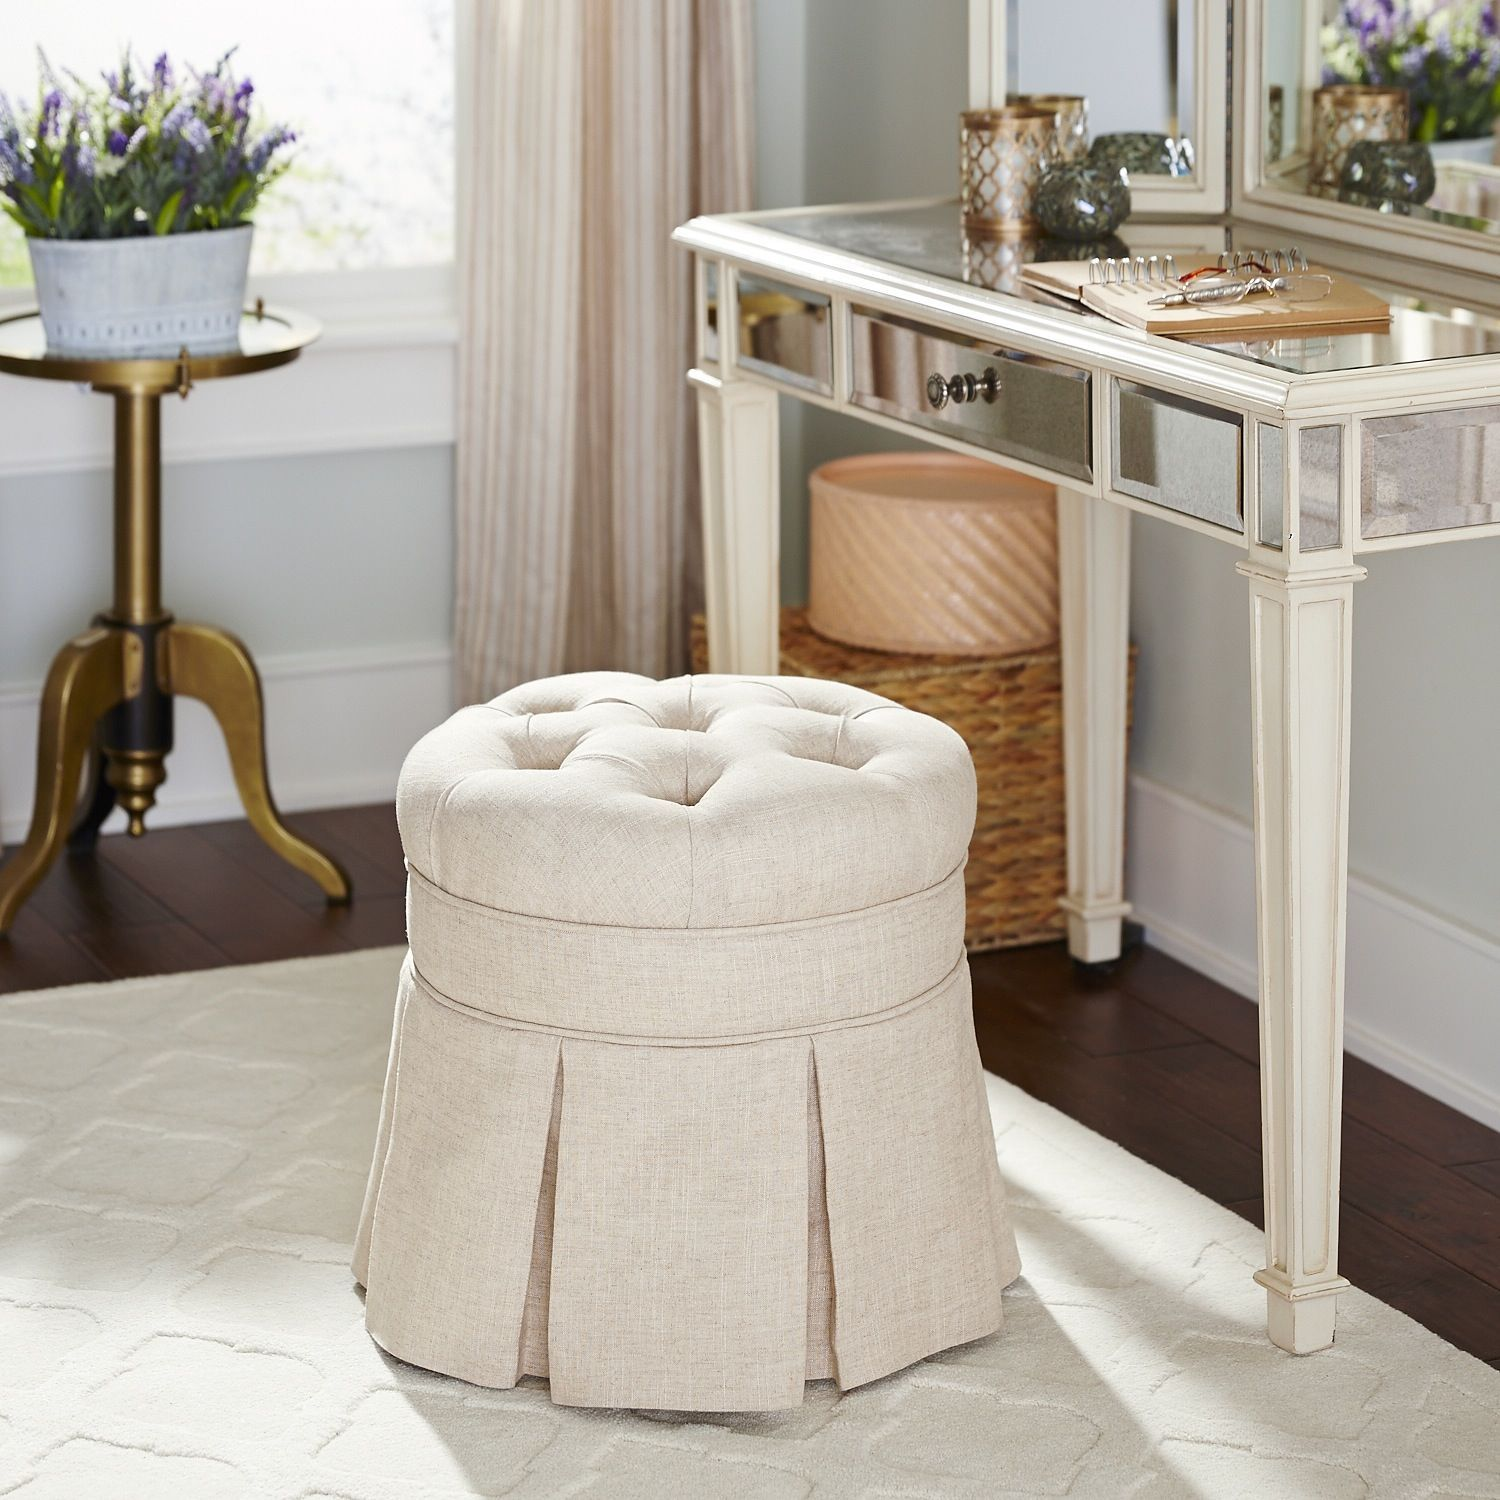 Vanity Stools Or Benches Avery Vanity Stool Pier 1 Imports Bedroom Ideas For